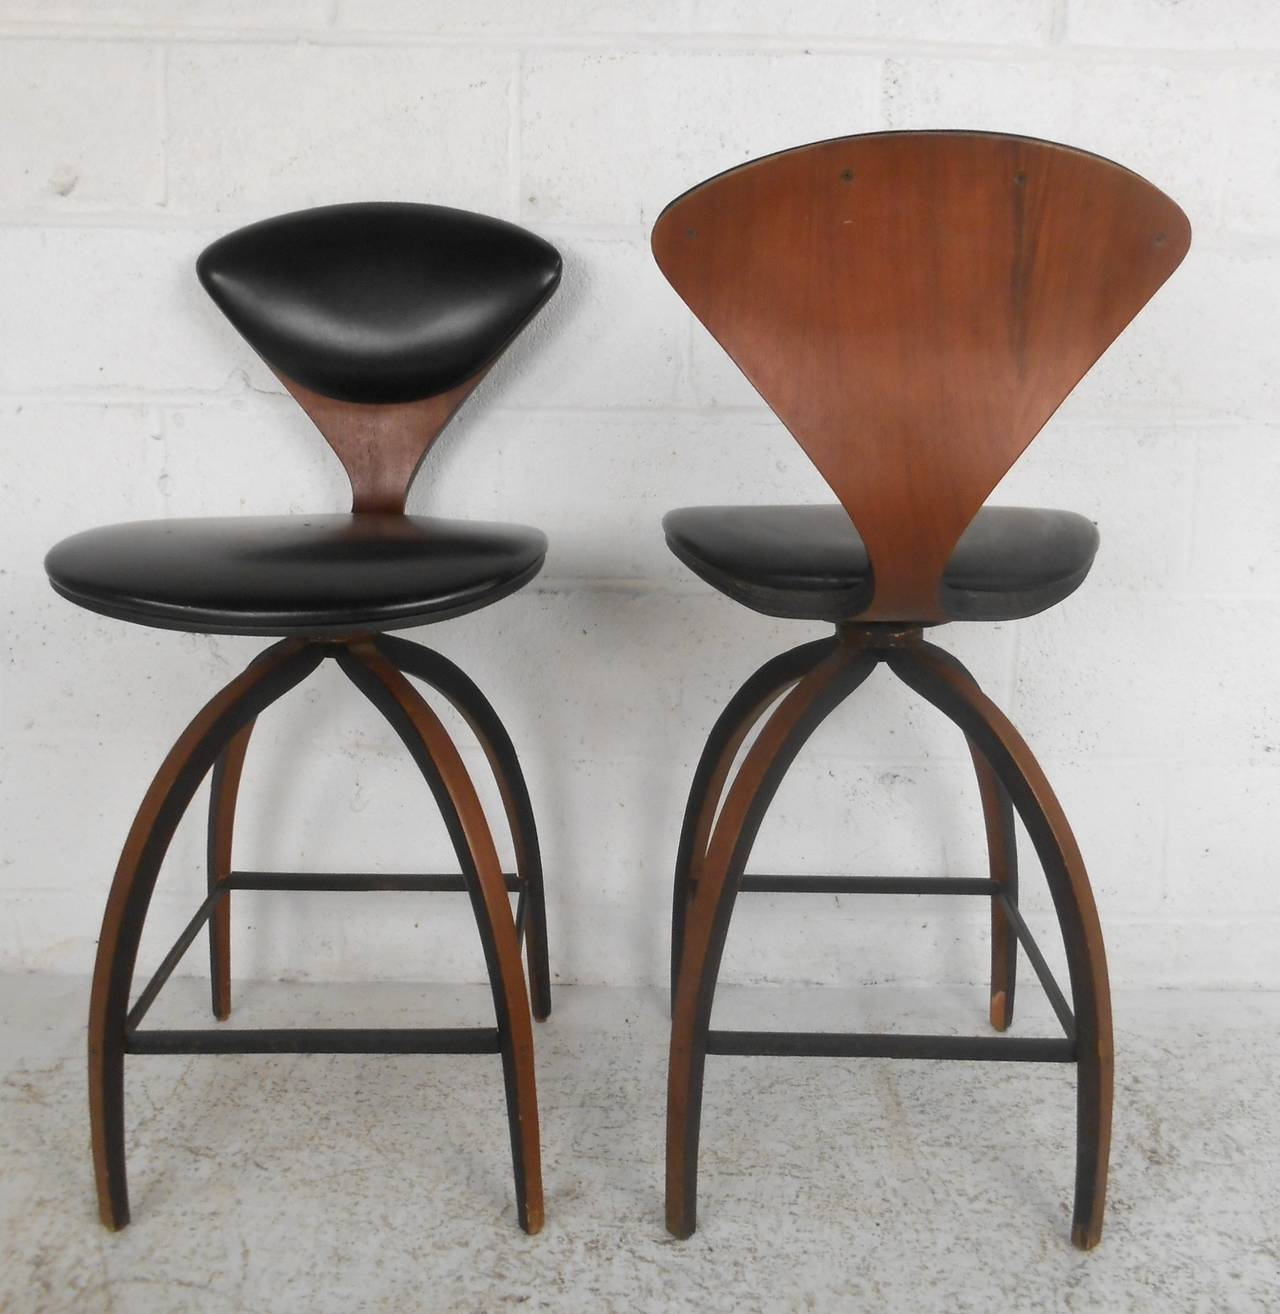 Pair of Mid-Century Modern Plycraft Bar Stools by Norman Cherner at ...